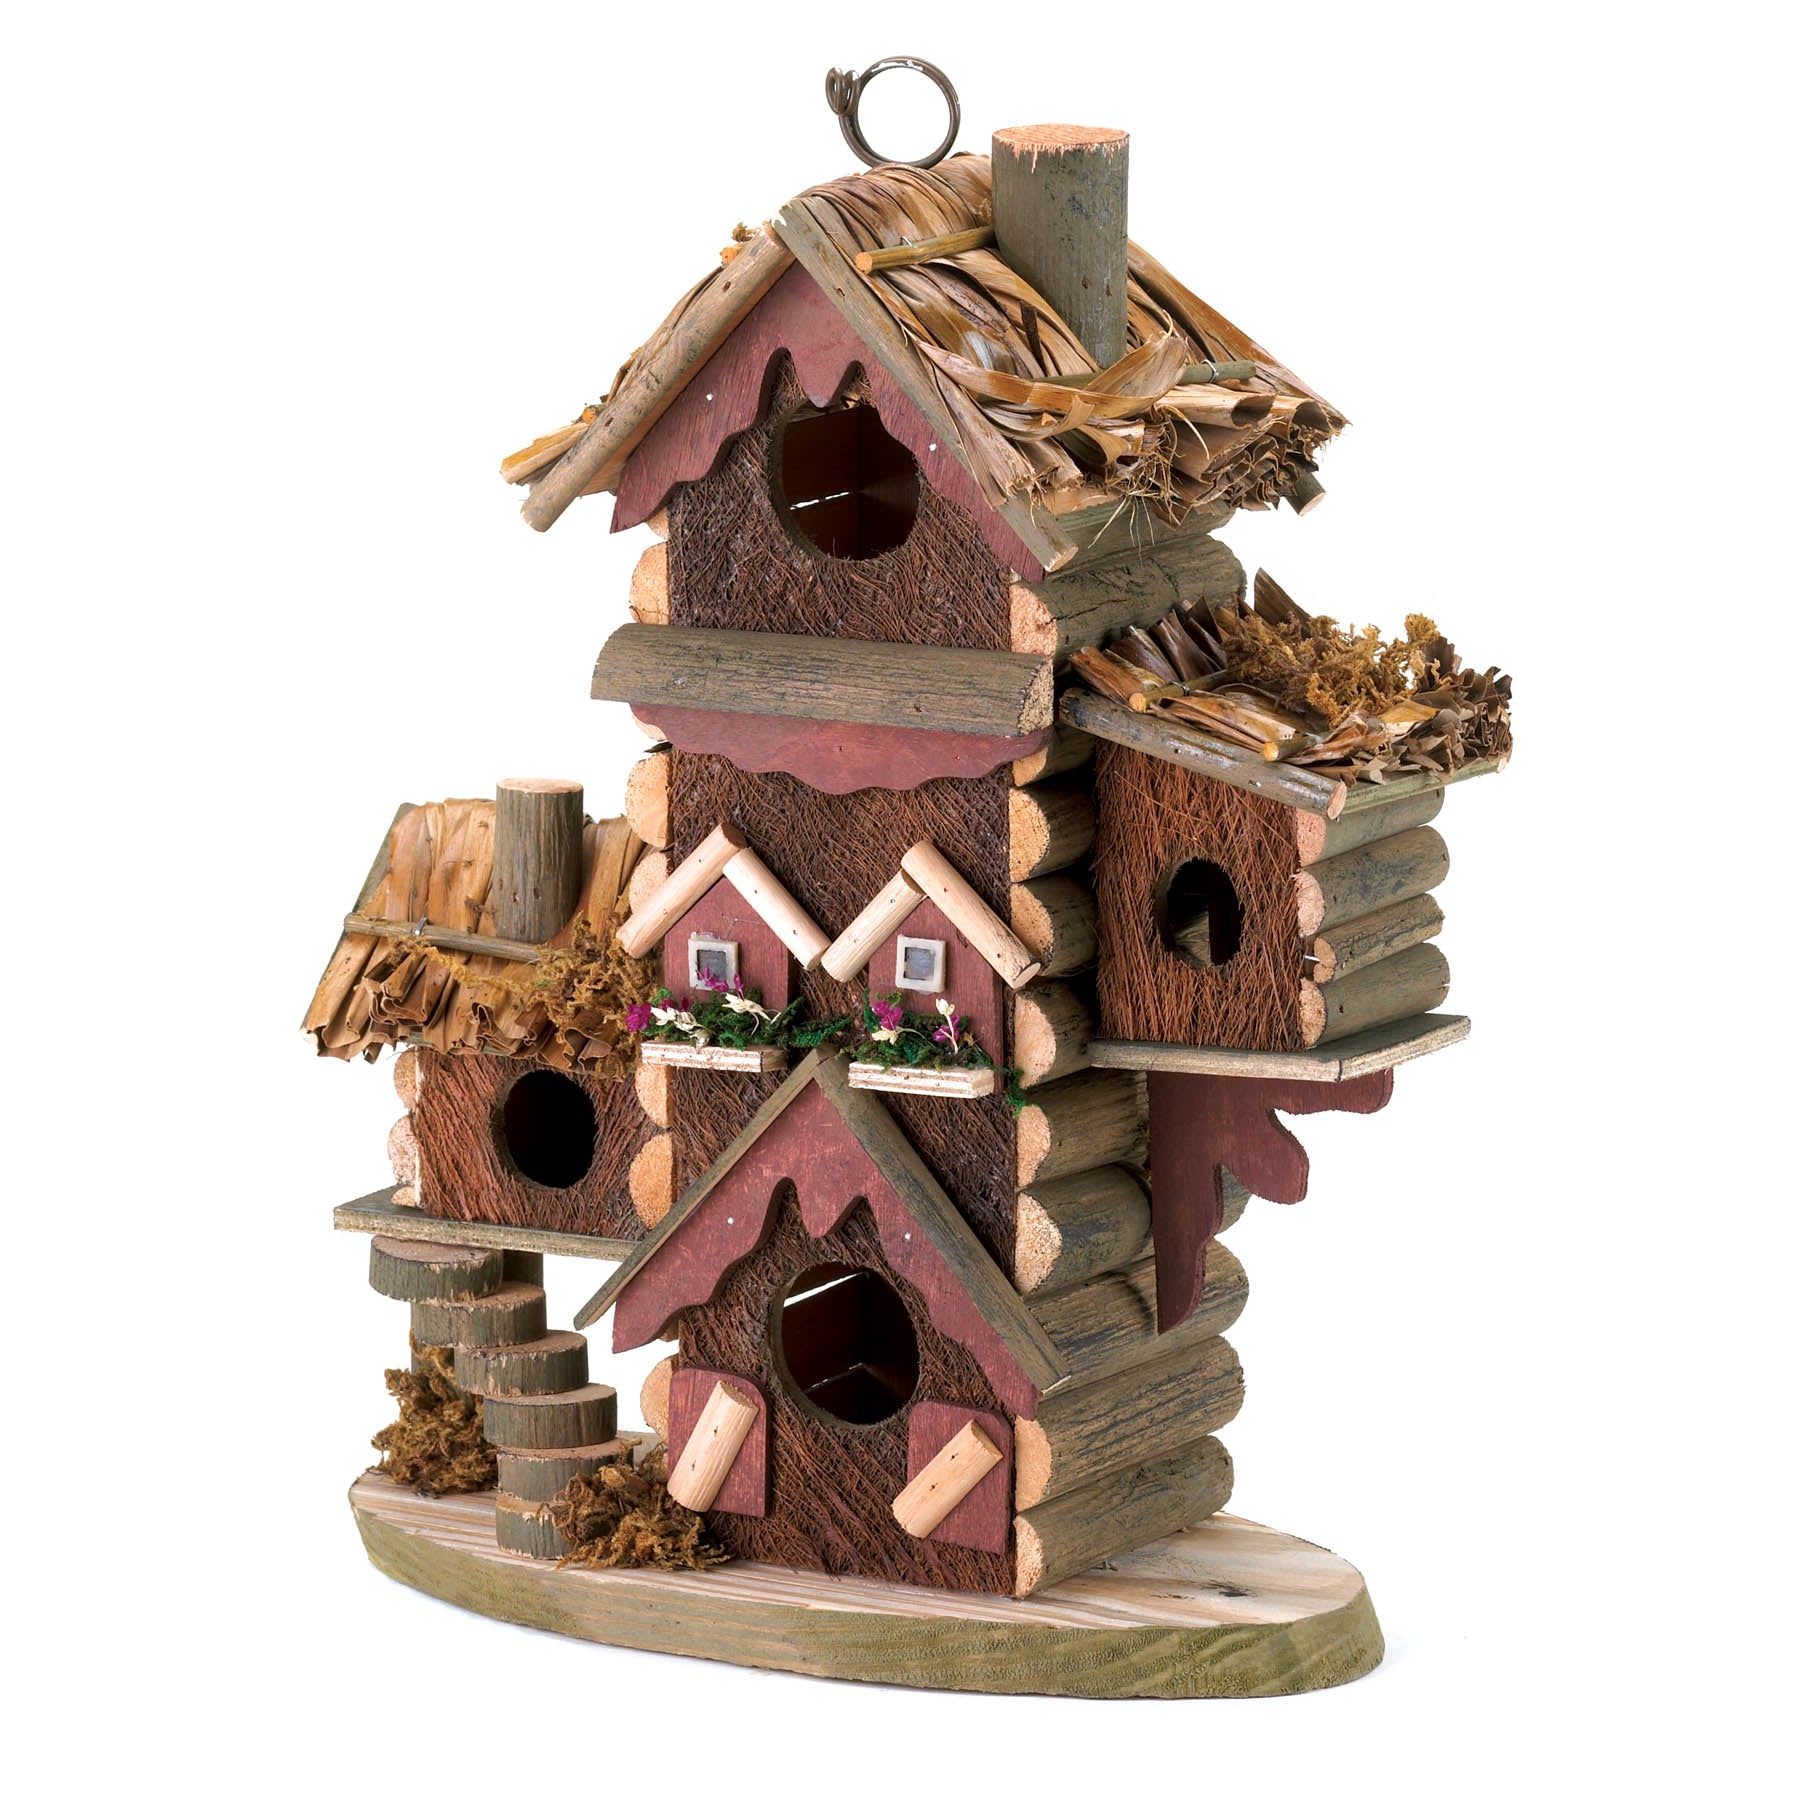 Songbird Valley Gingerbread-Style Birdhouse - 30206